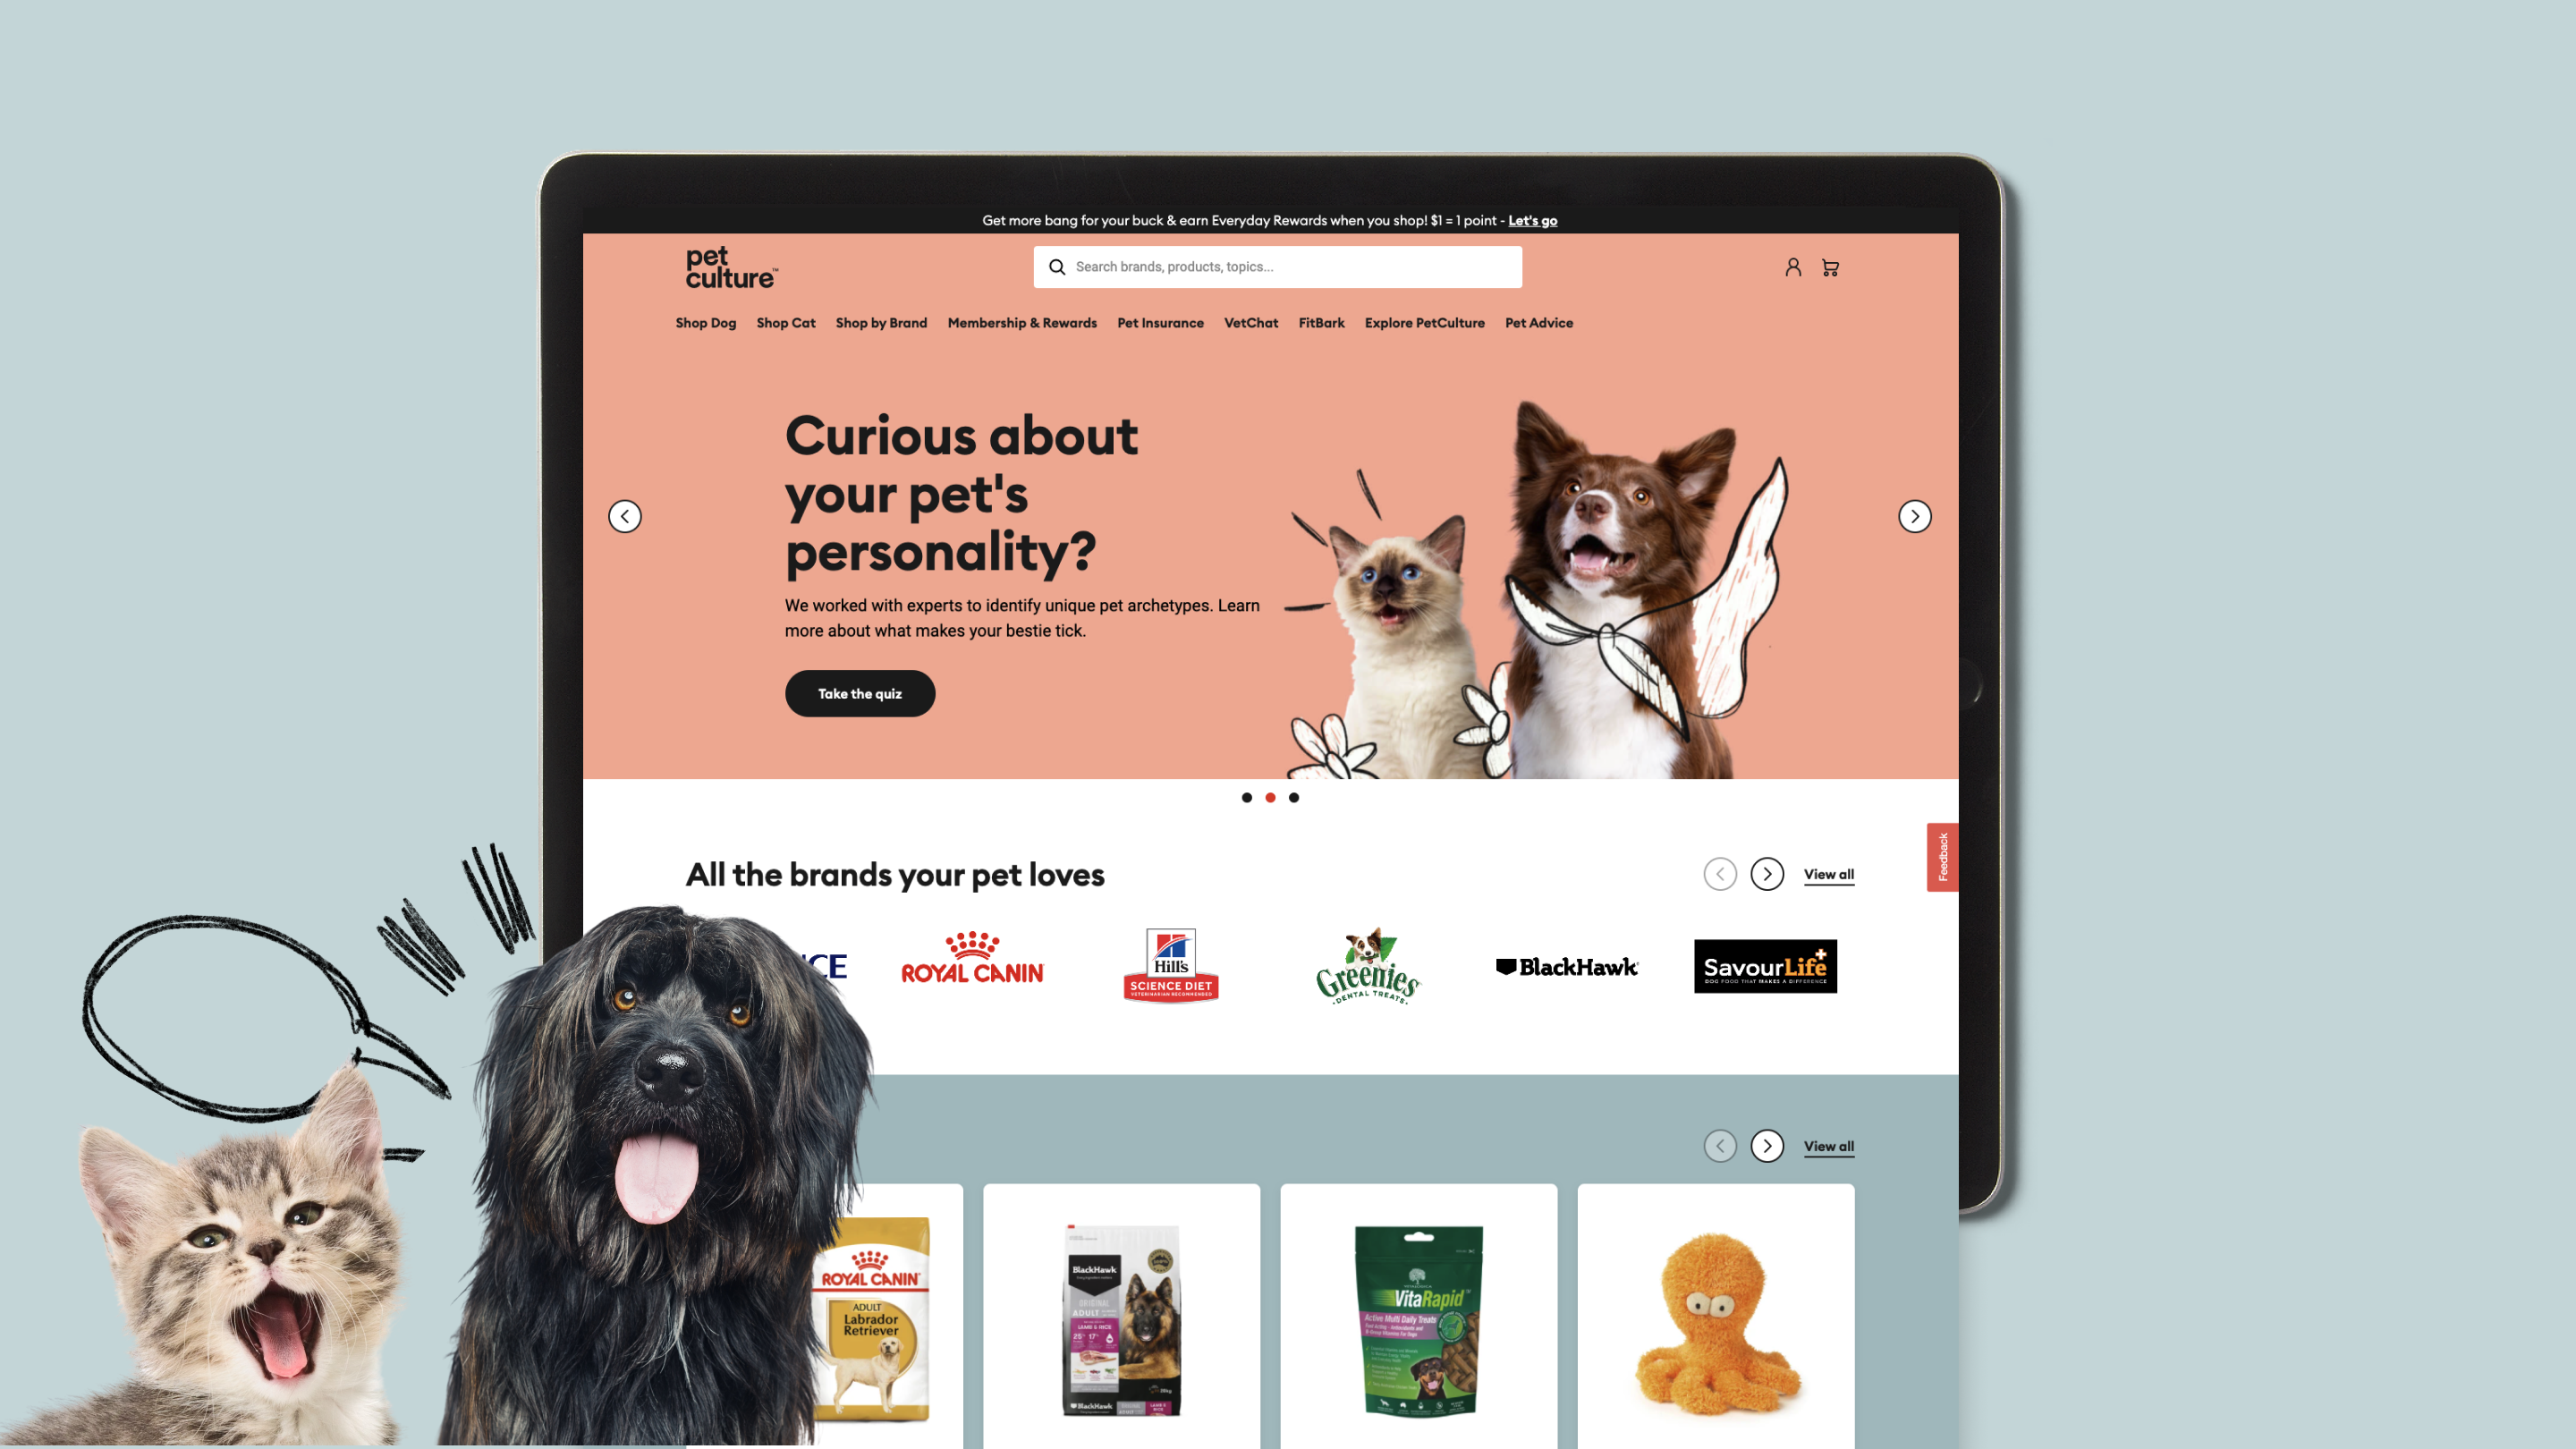 Pet Culture website on tablet with cat and dog in foreground